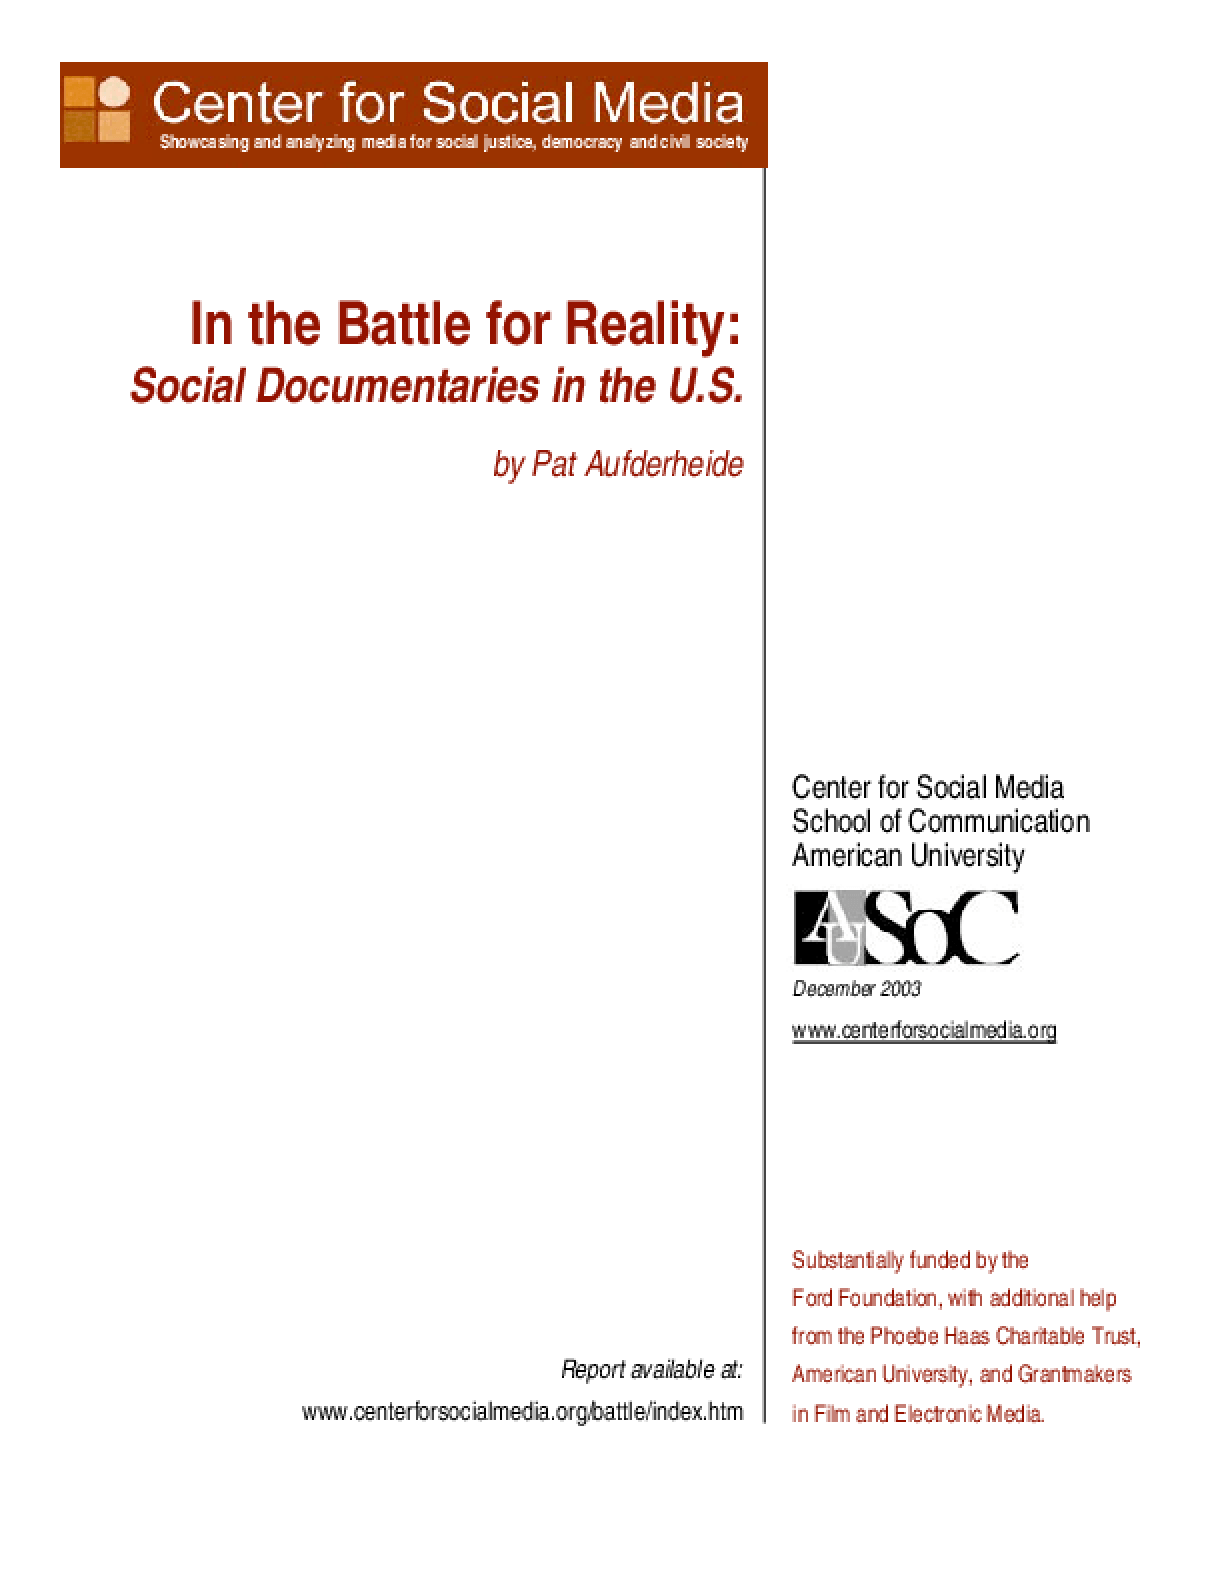 In the Battle for Reality: Social Documentaries in the U.S.